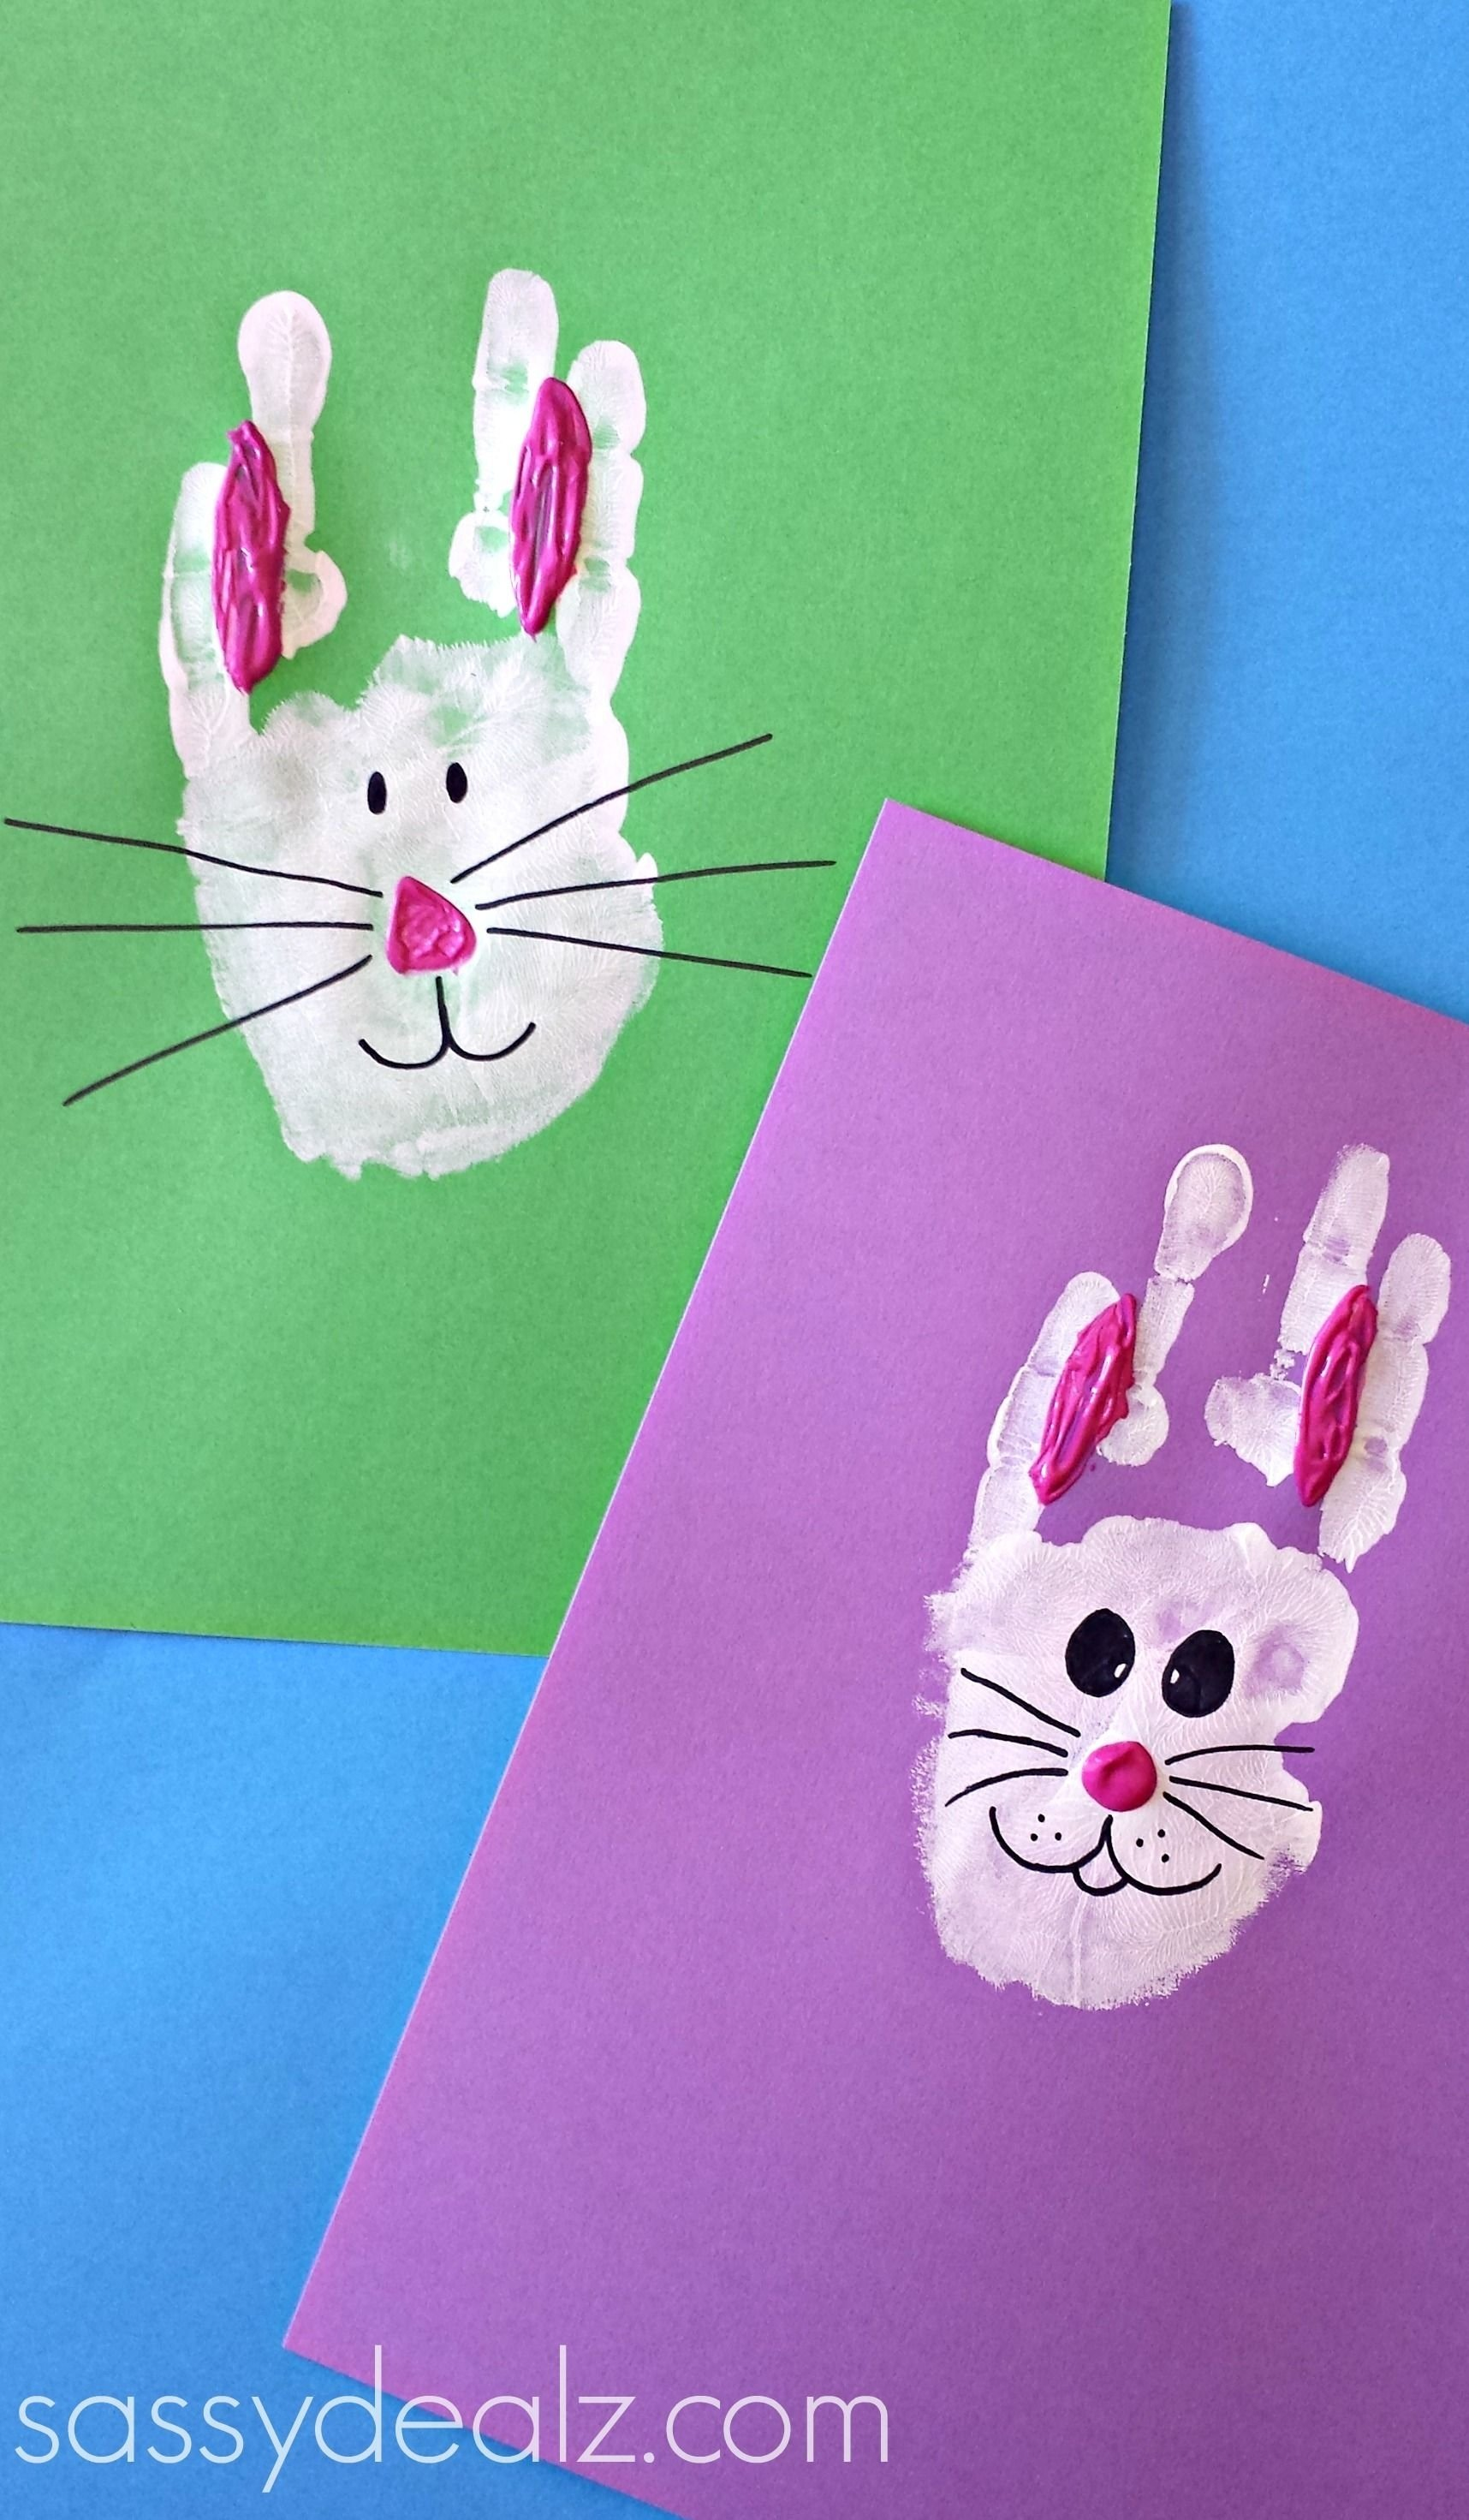 10 Fashionable Easter Arts And Crafts Ideas bunny rabbit handprint craft for kids easter art project idea diy 2021